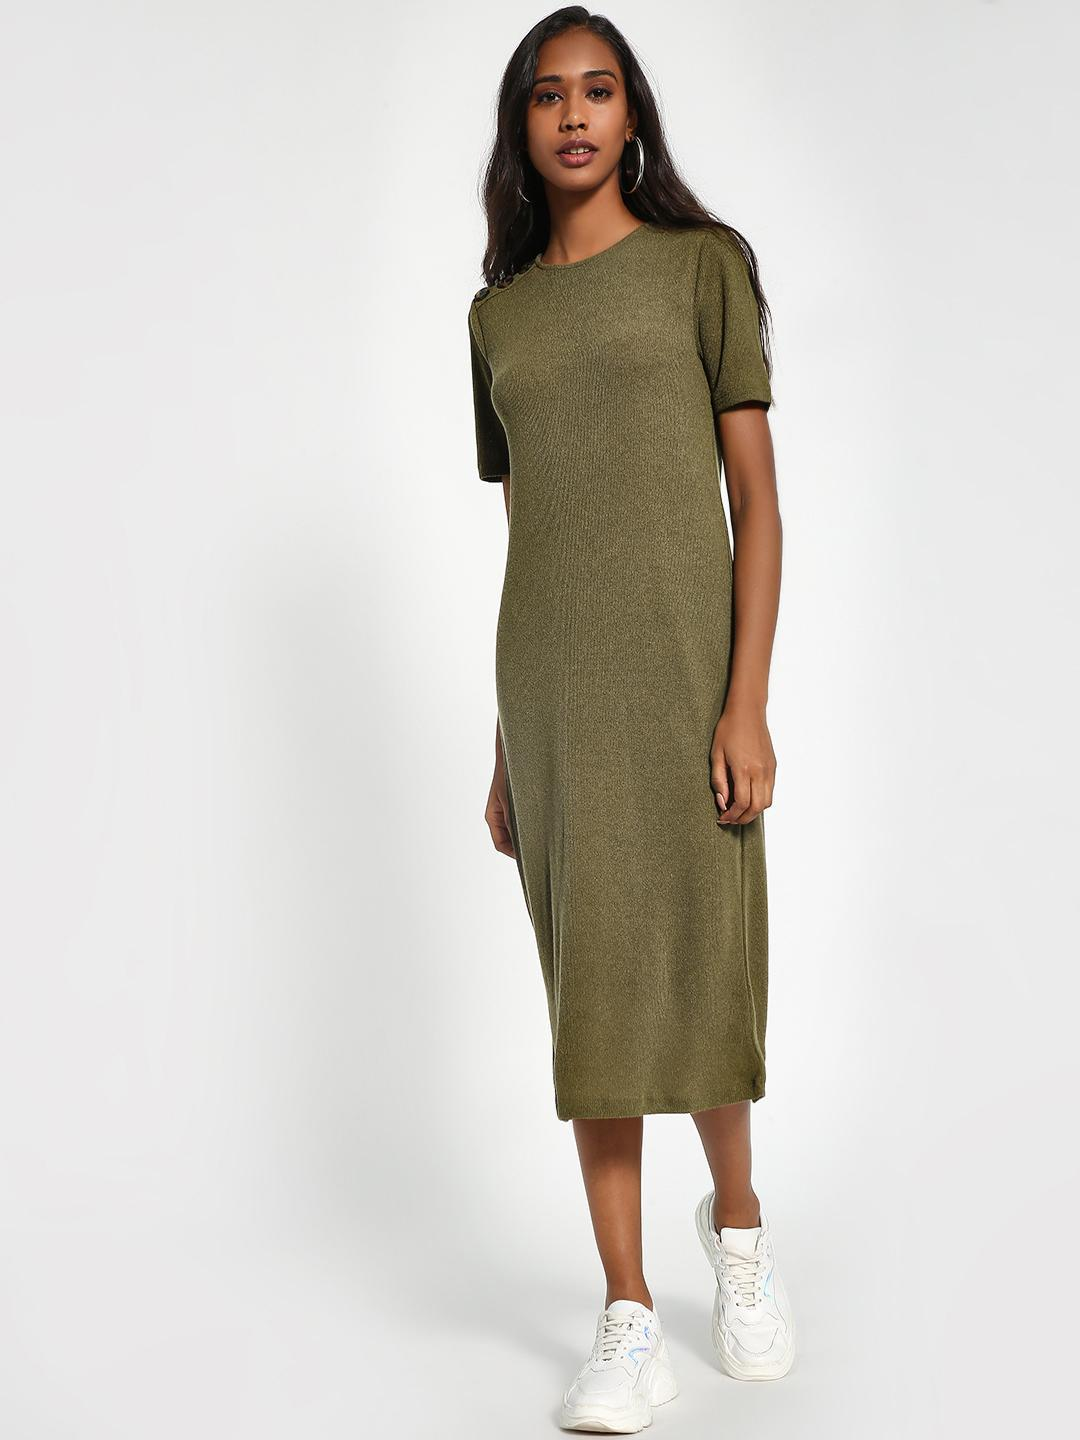 Sbuys Khaki Shoulder-Button Ribbed Midi Dress 1